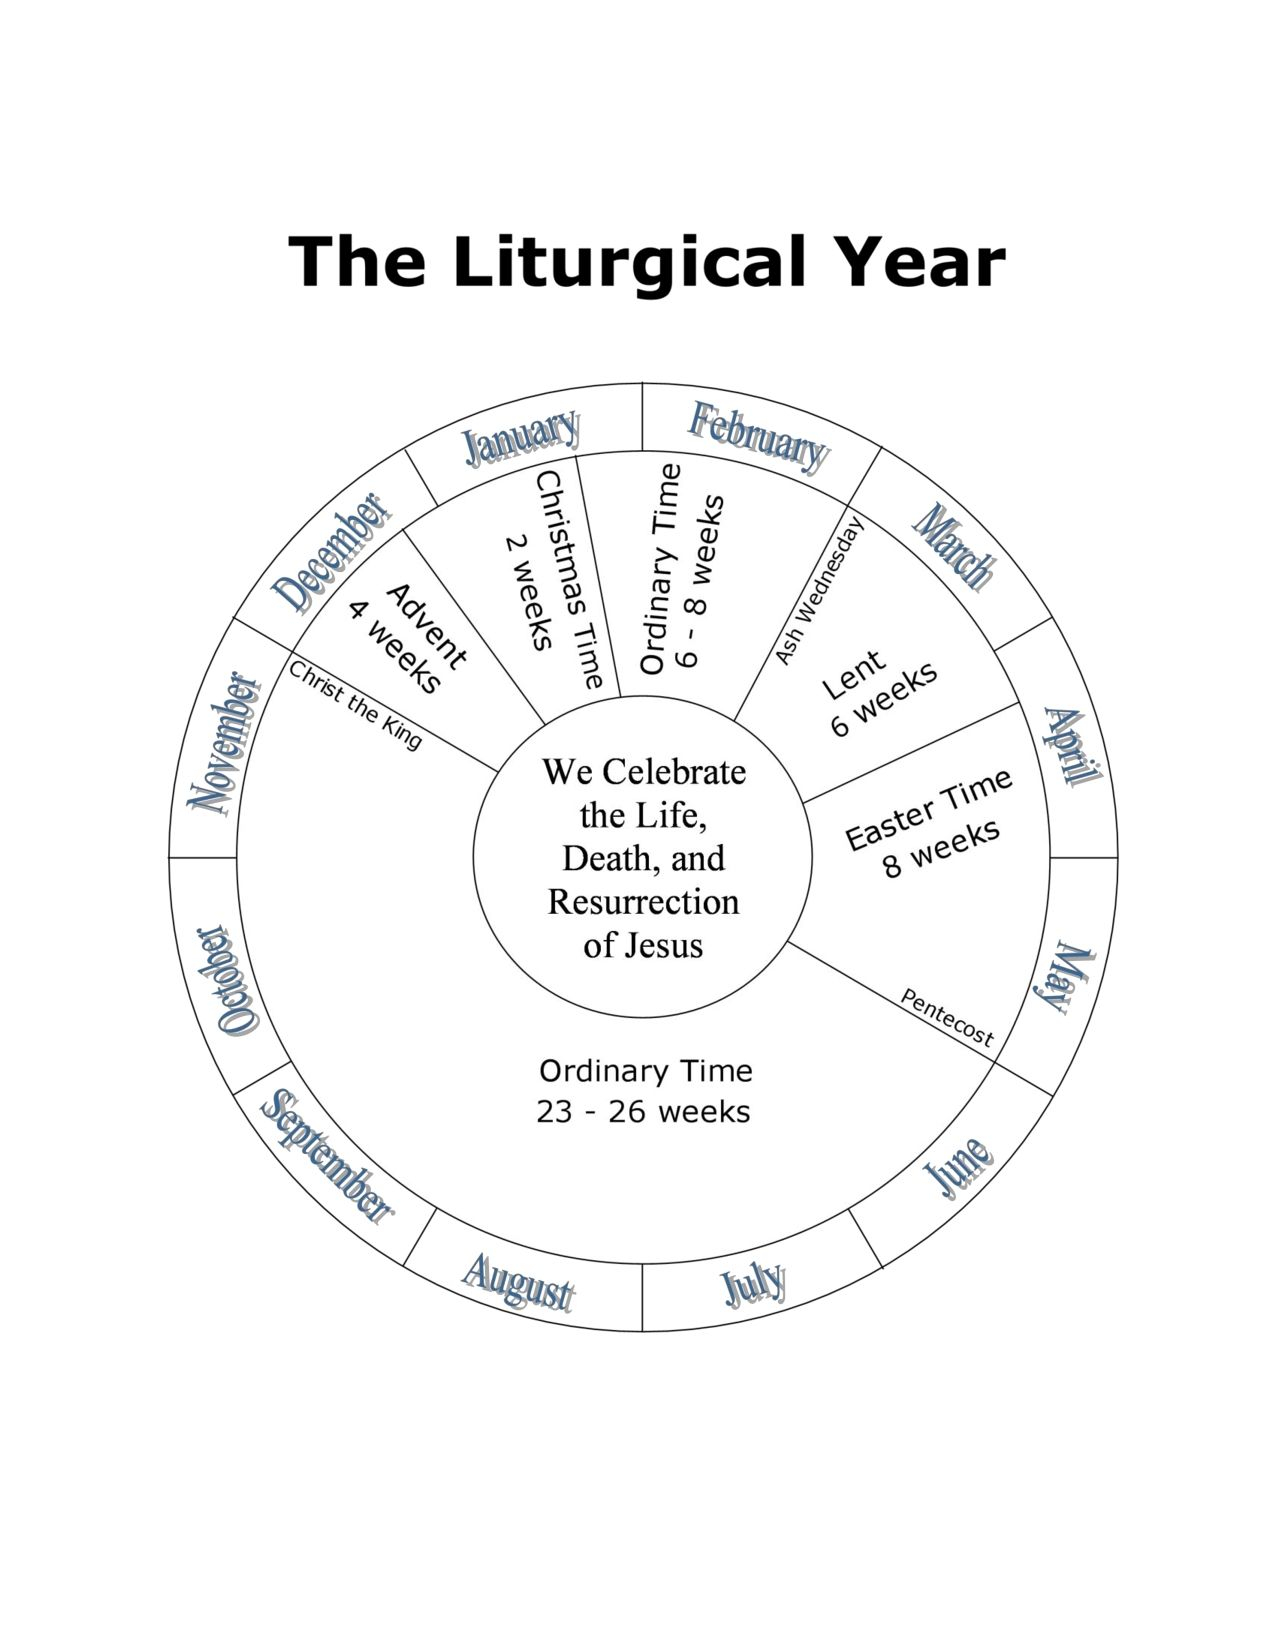 Year C Catholic Calendar In 2020 | Catholic Liturgical